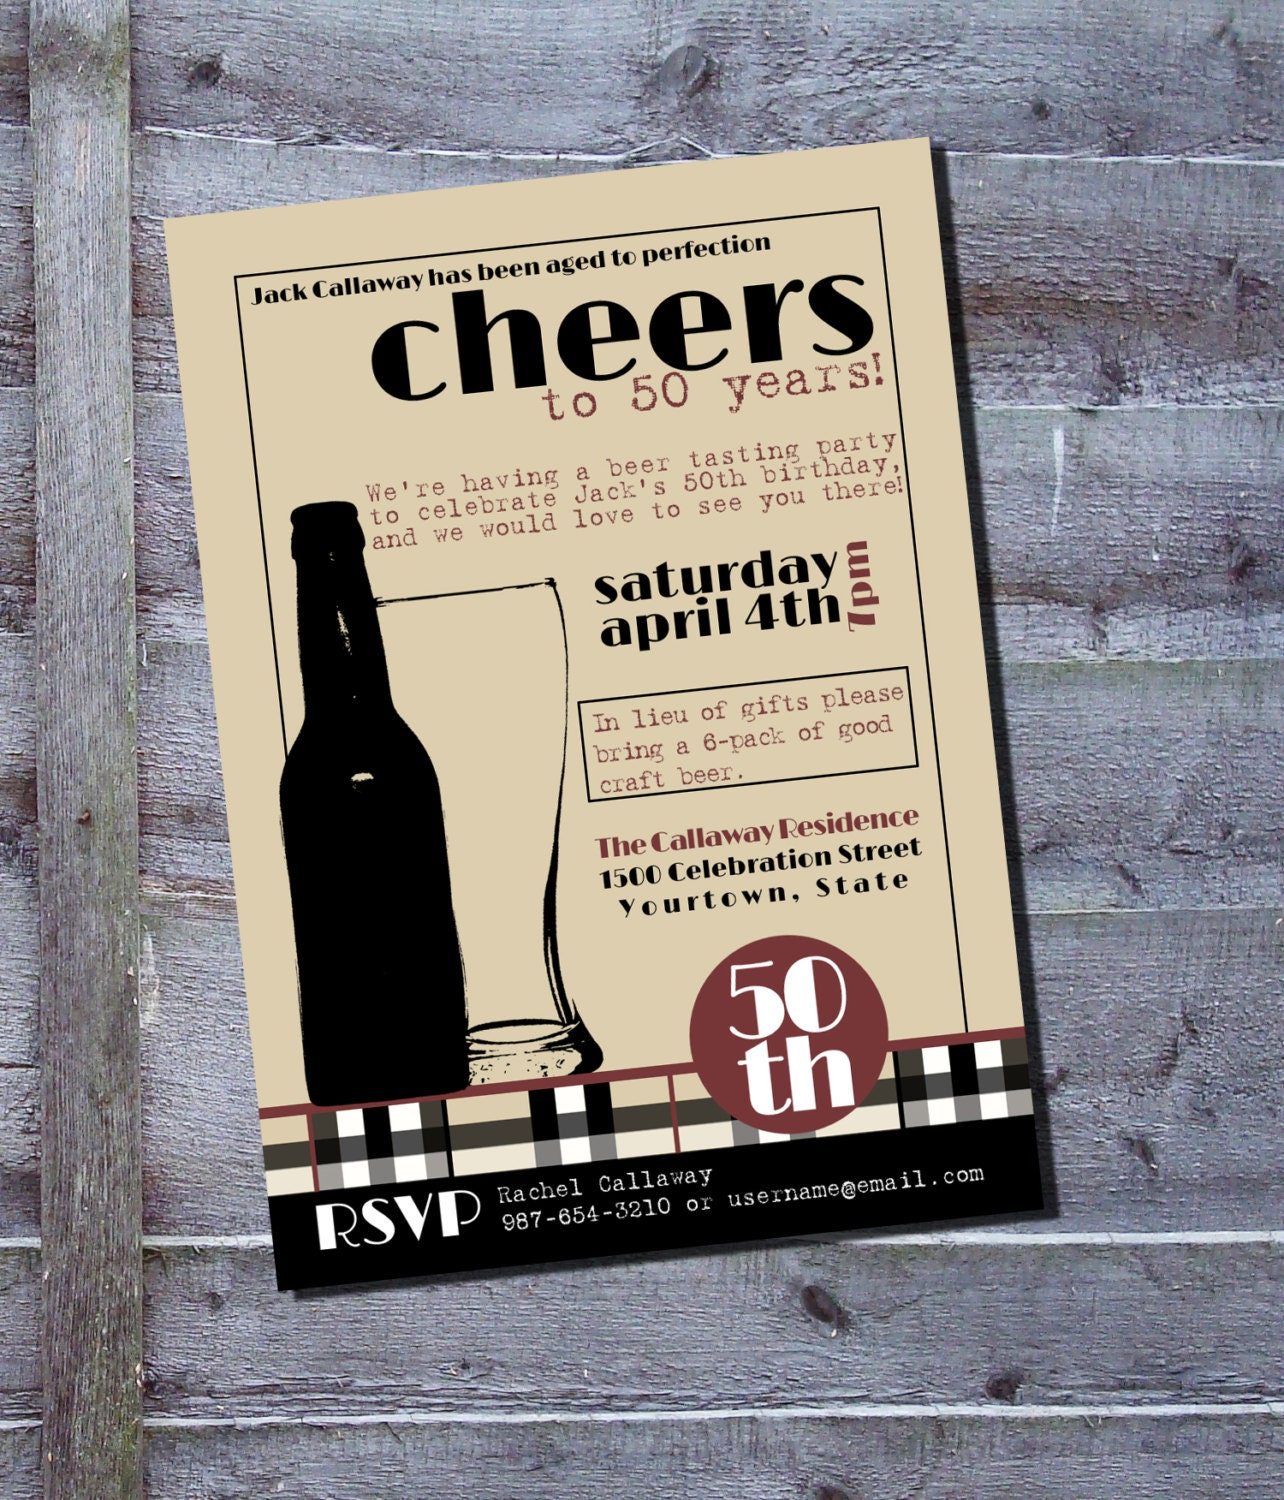 Beer Tasting Birthday Party Invitations images – Beer Tasting Party Invitations